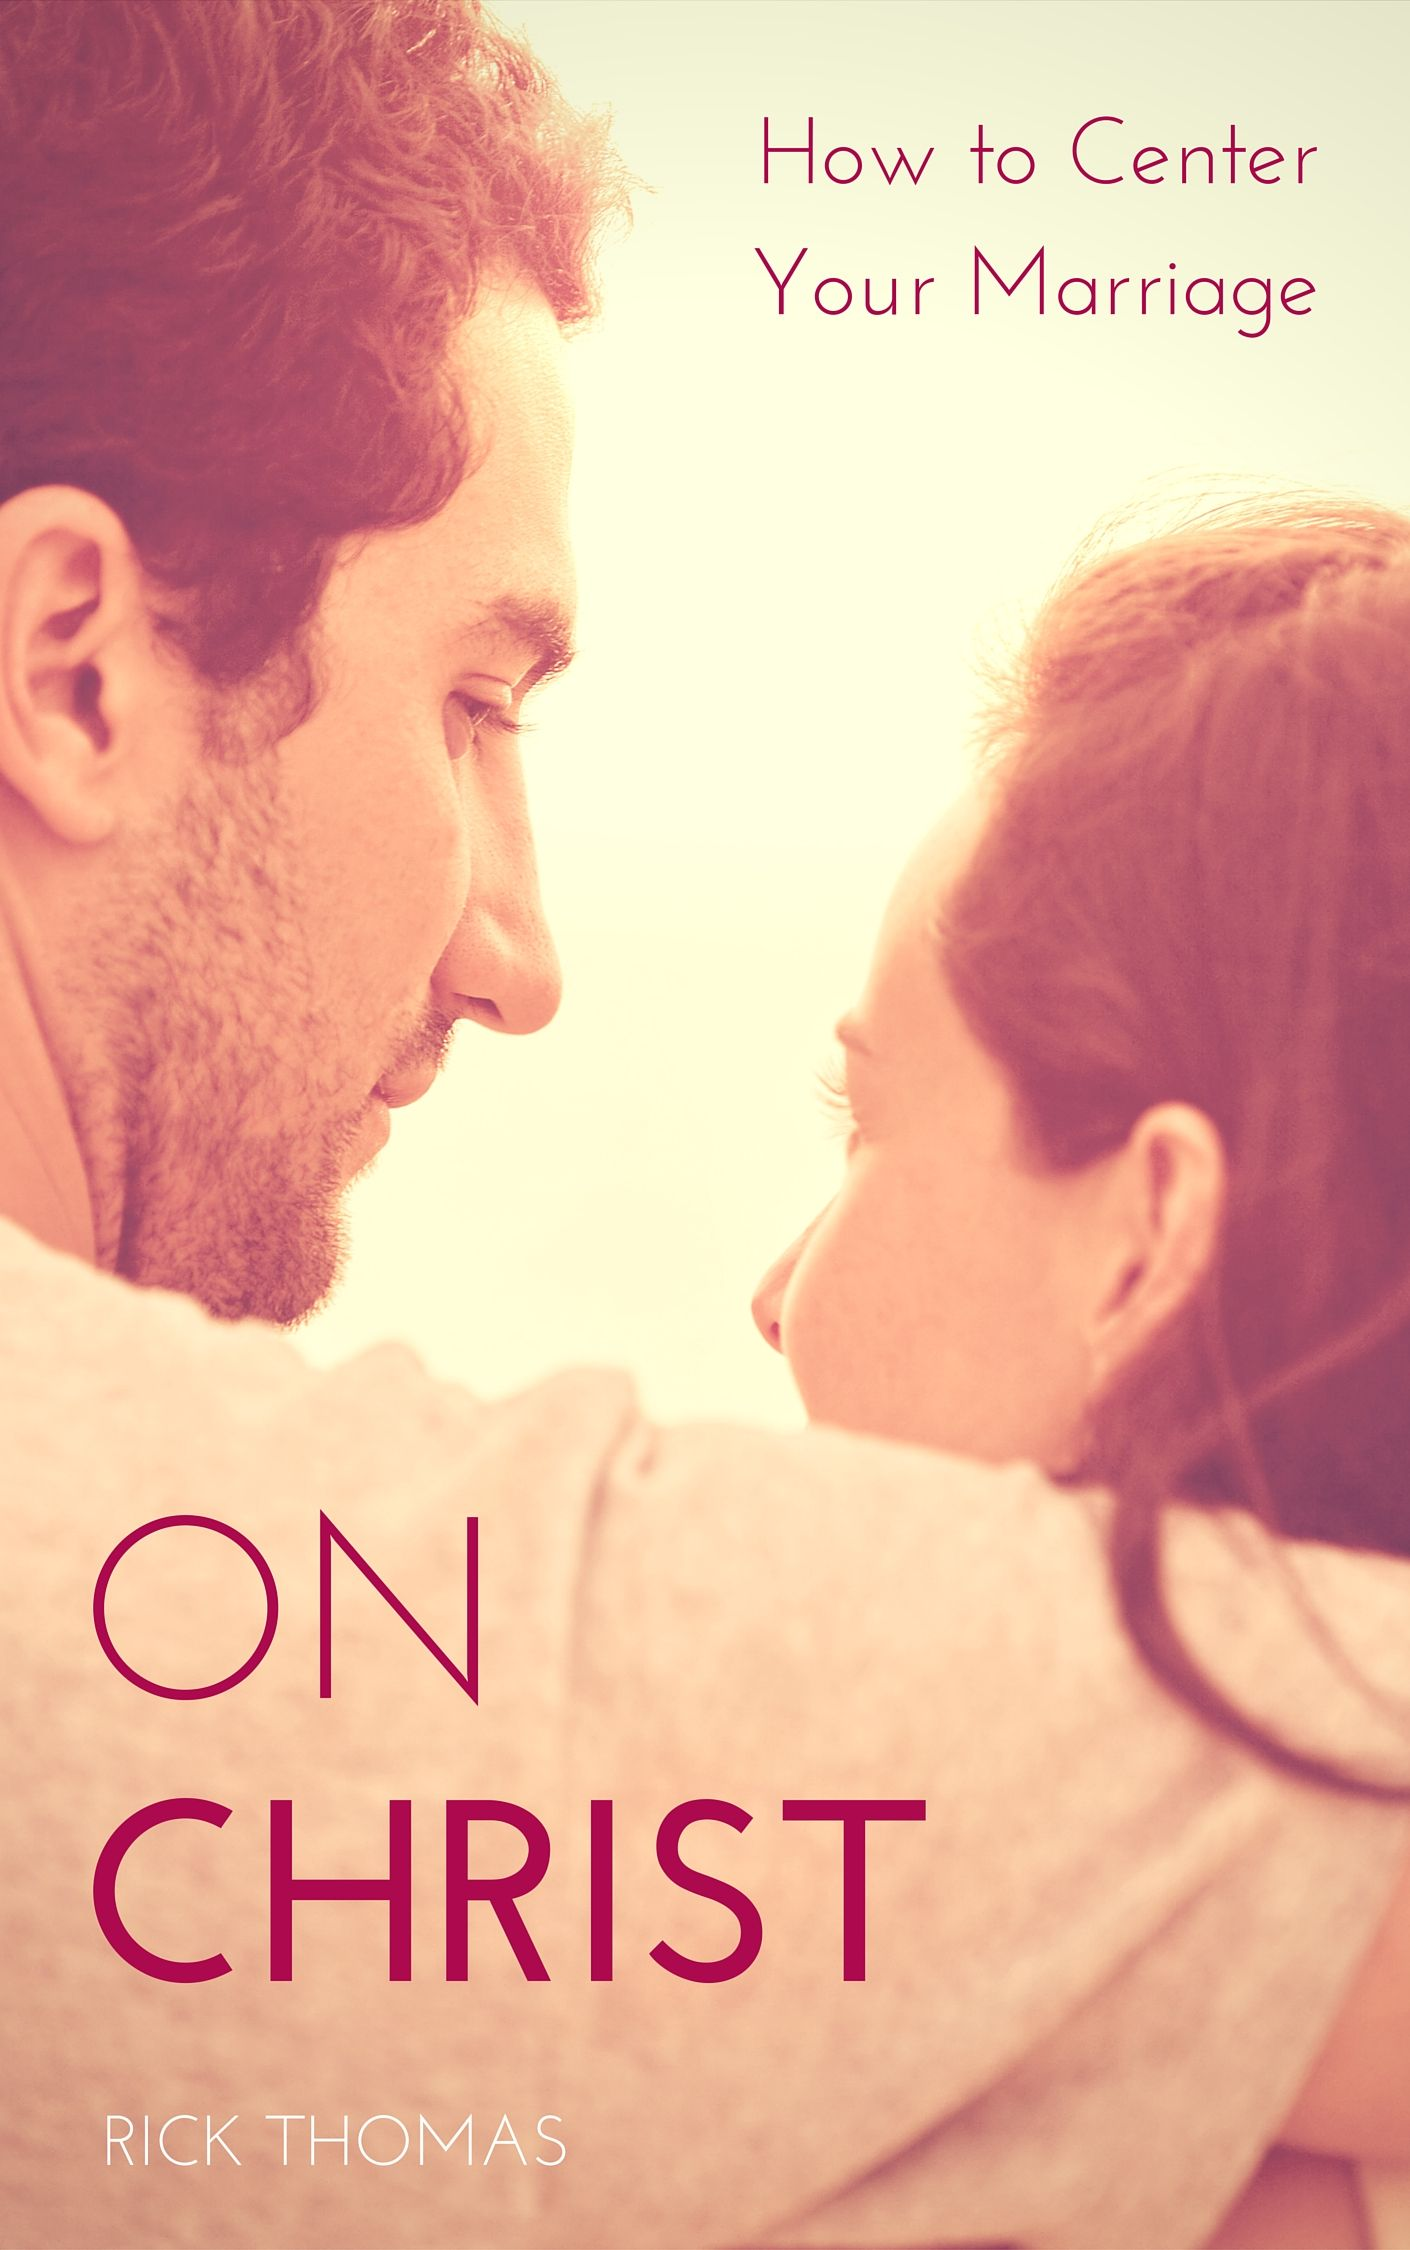 Centering Your Marriage On Christ